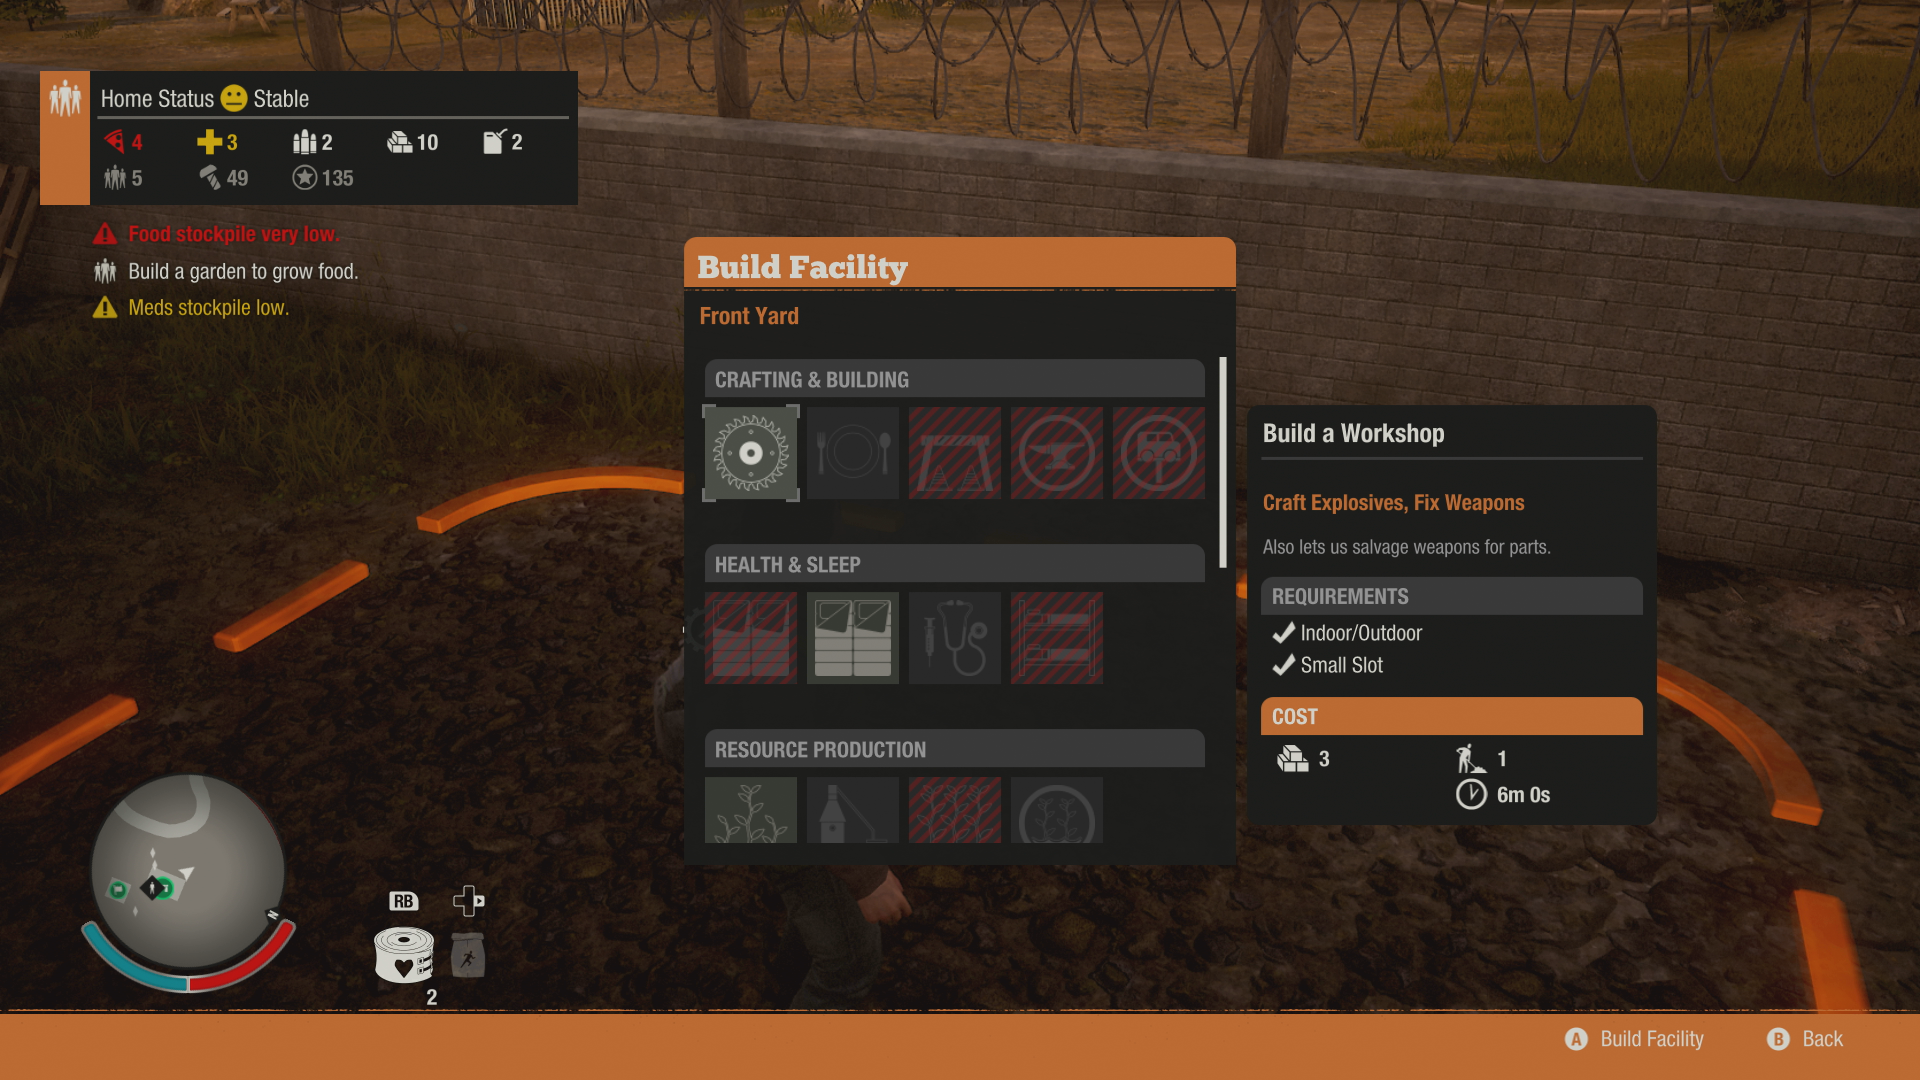 State Of Decay 2 Bases Best Base Locations Starting Usgamer Video This Walks You Through Building Circuit Using Auto Shop For Ten Materials And Two Scraps Circuitry Can Craft Vehicle Upgrades Improve Durability